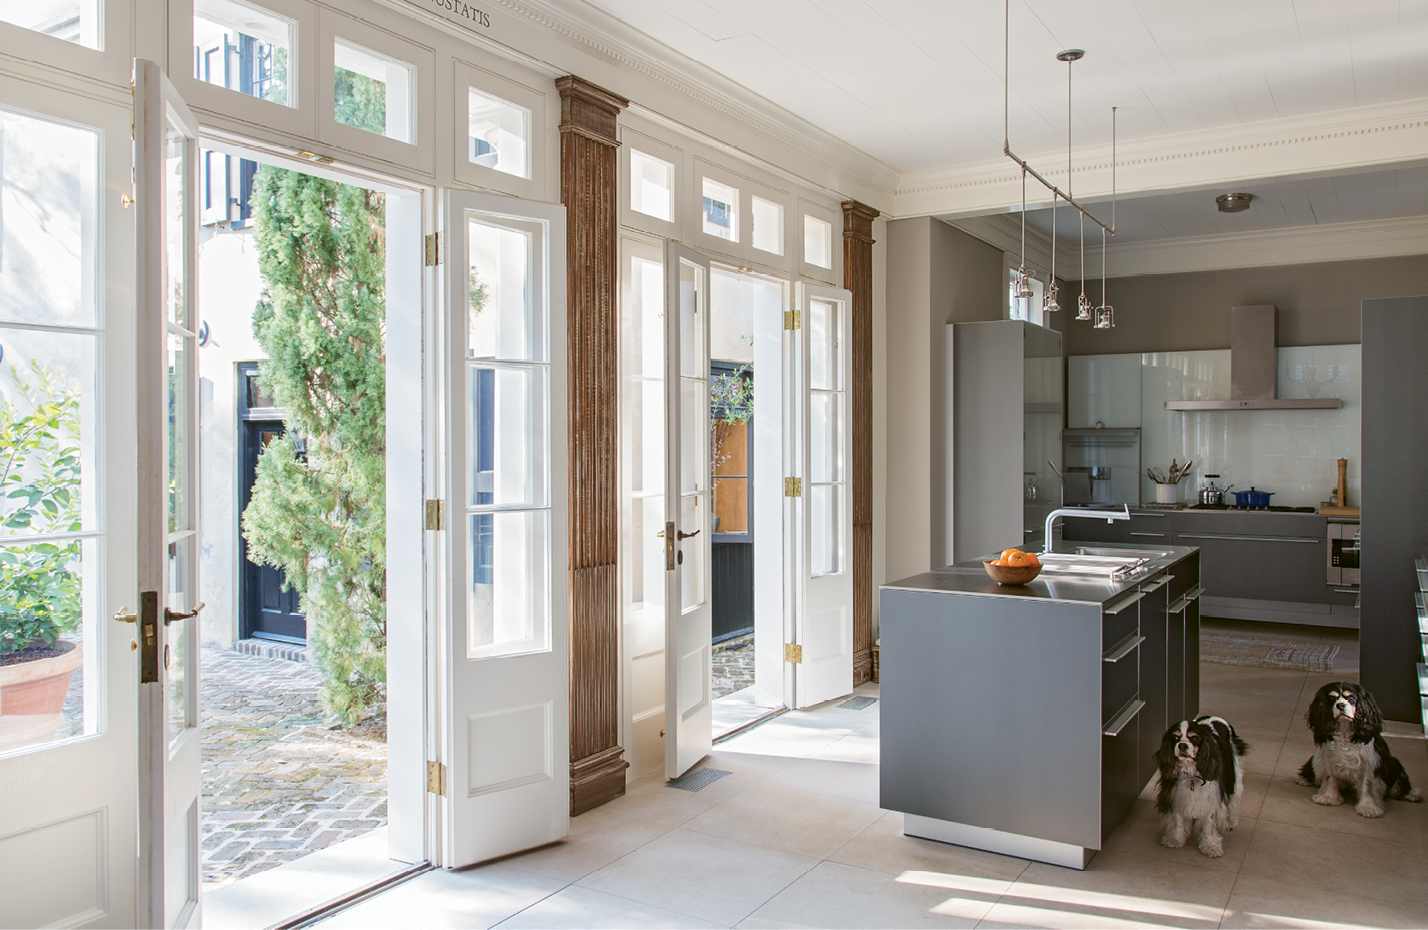 Sleek cabinetry by Bulthaup commingles with antiqued pilasters in the kitchen, located within what was once the rear porch.